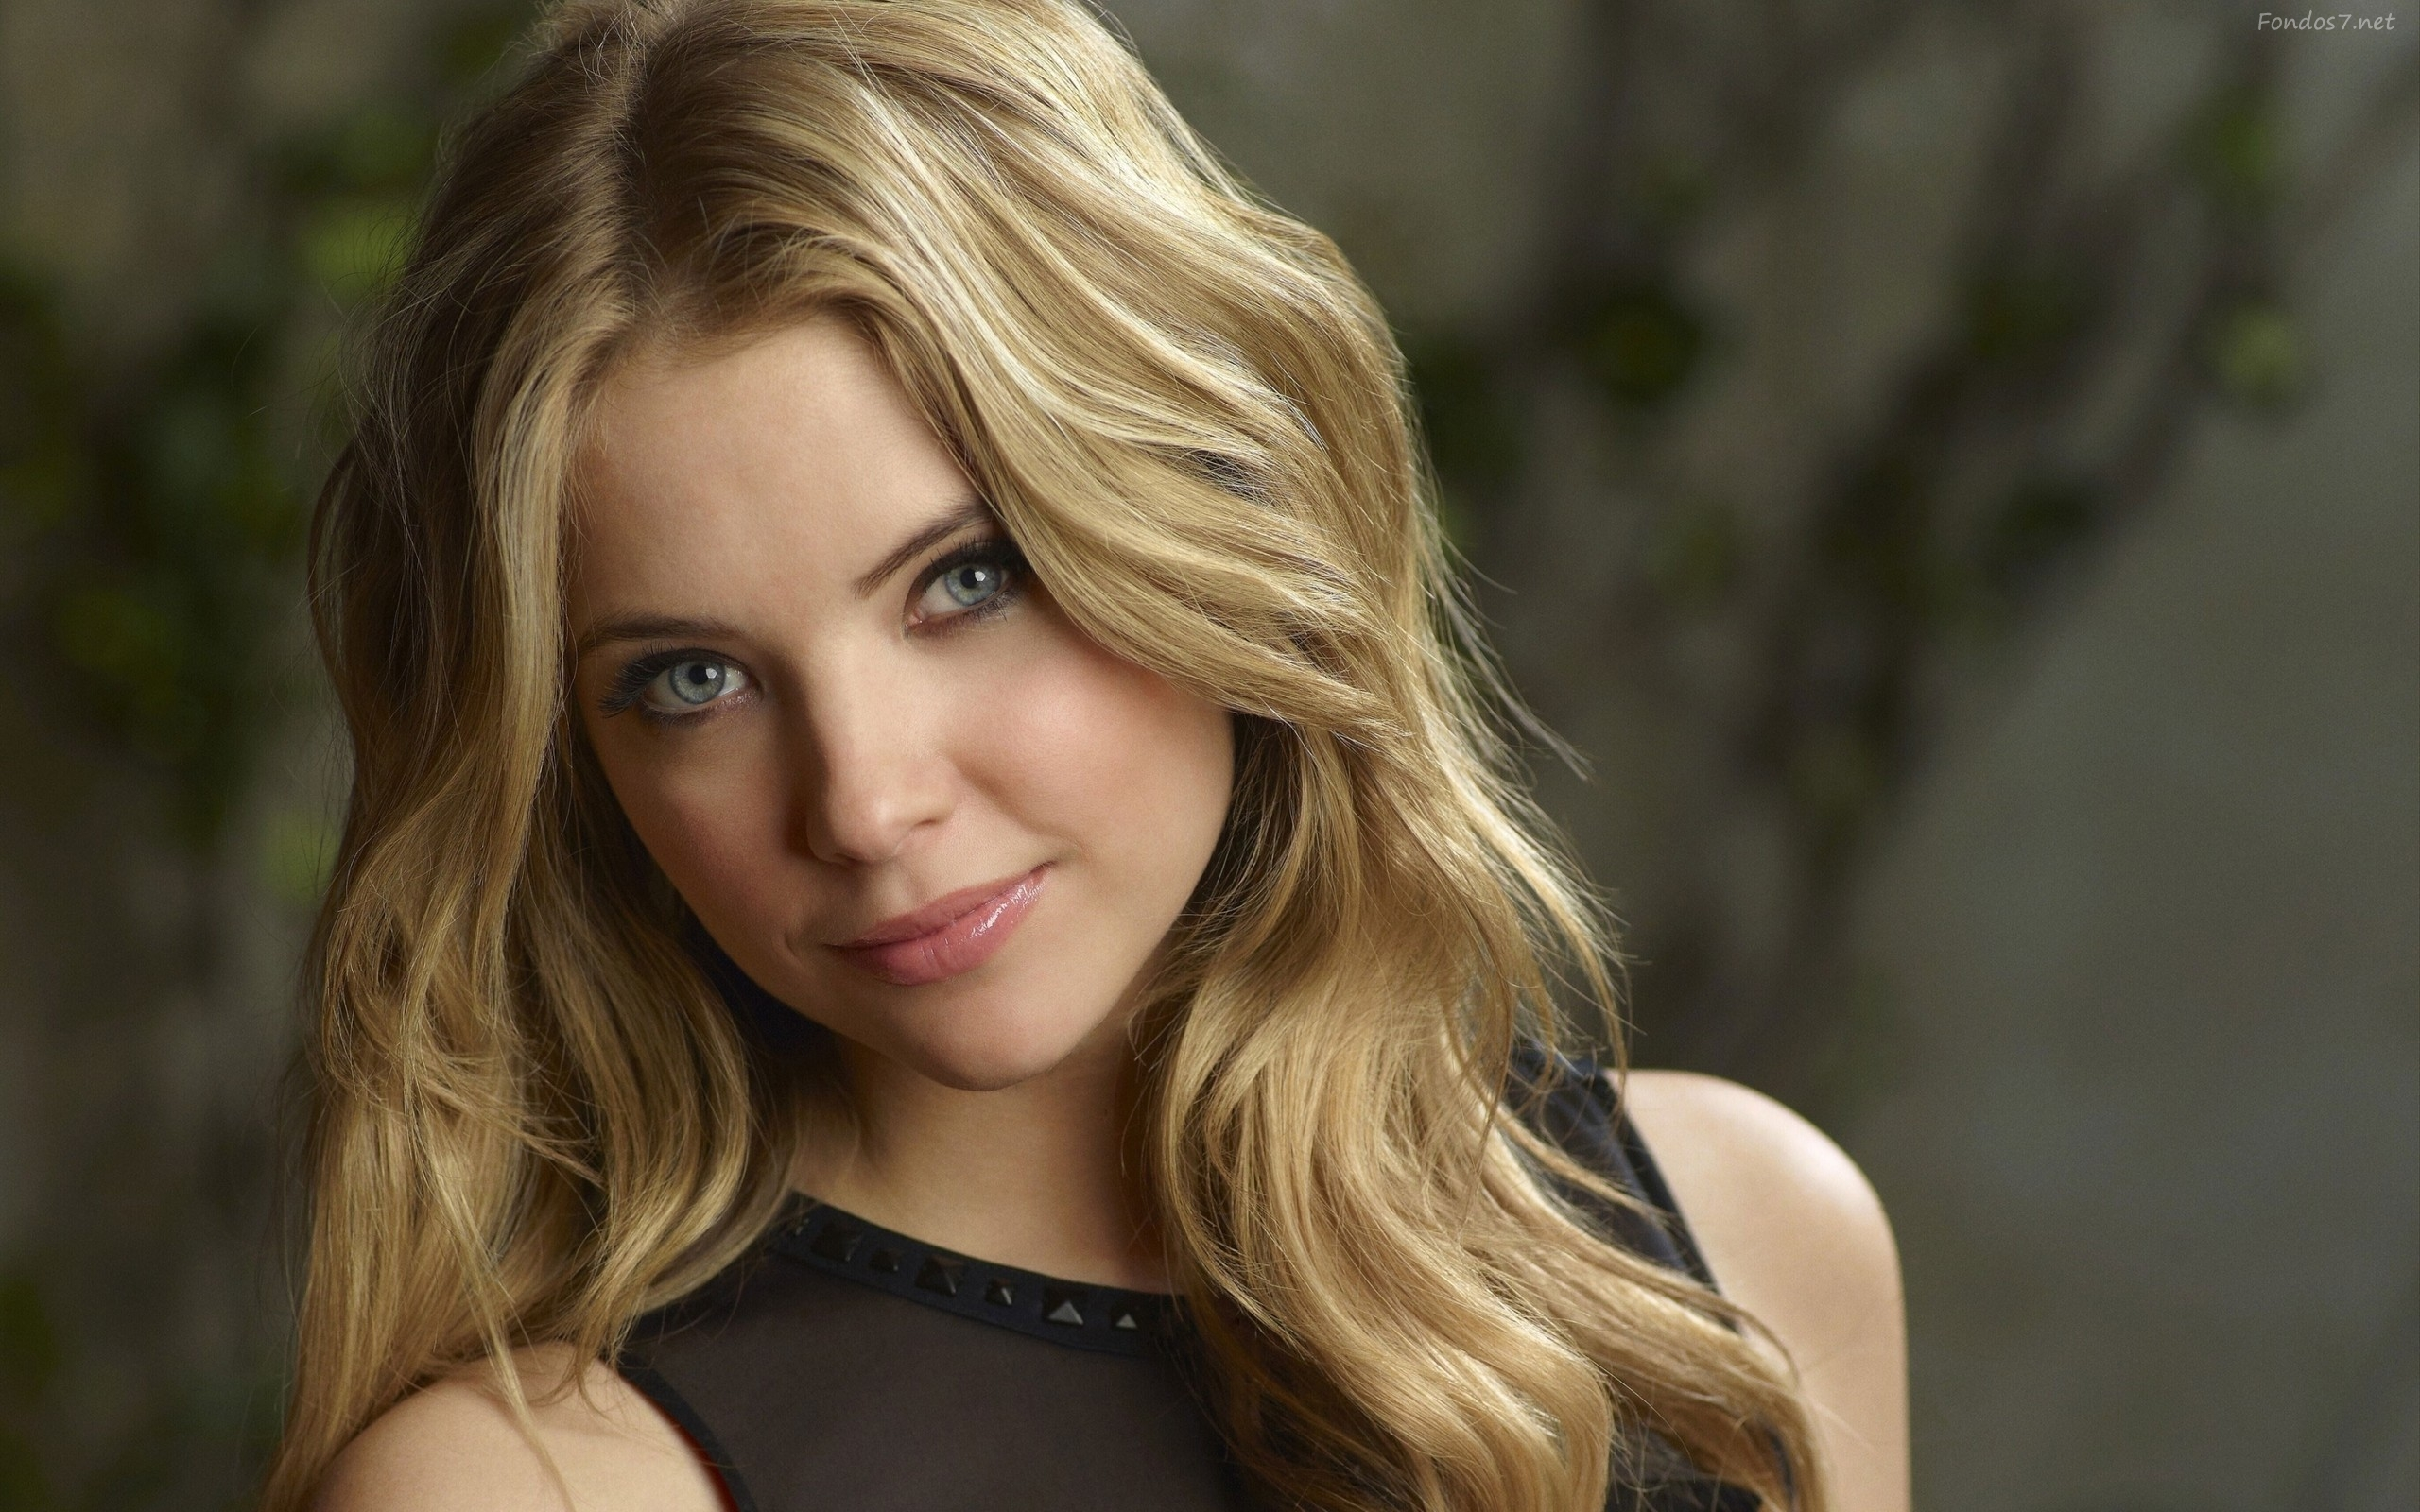 Lovely Ashley Benson Wallpaper Photo